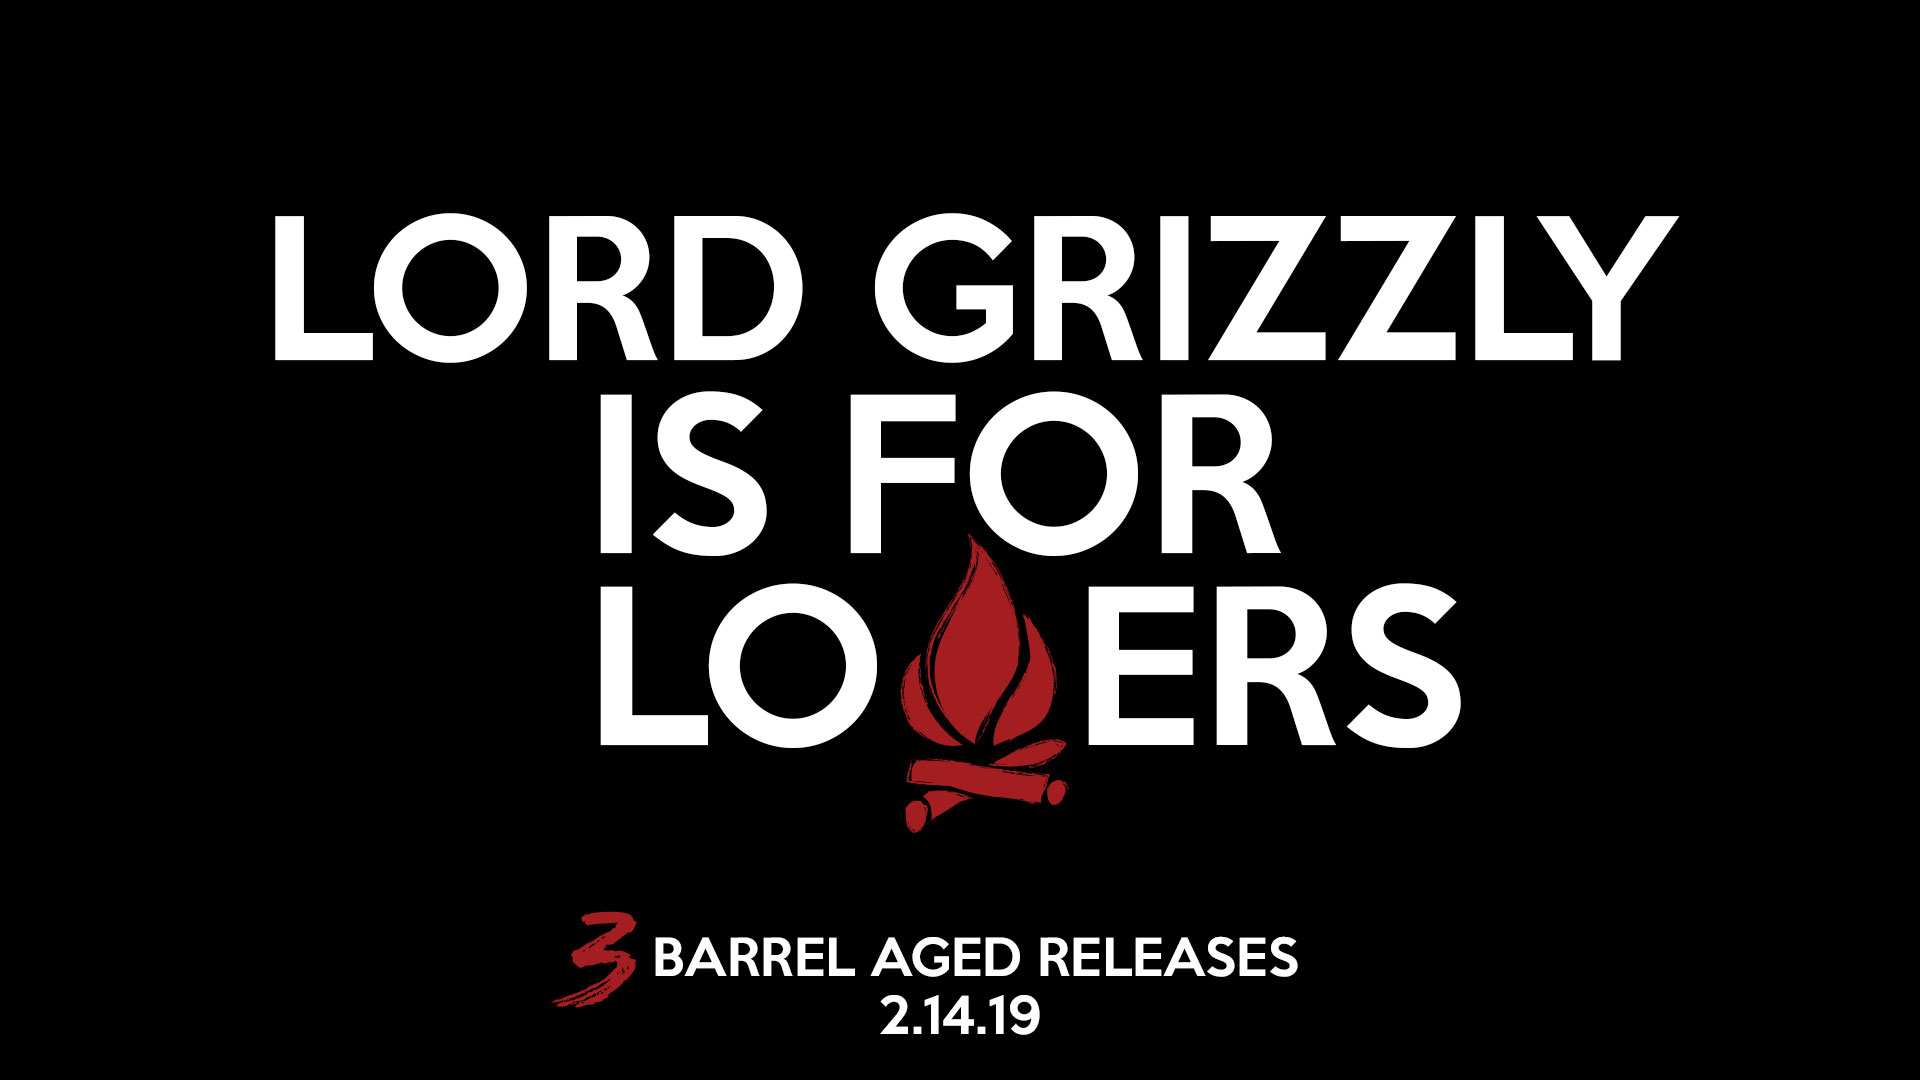 Lord Grizzly Day on Valentine's Day at Lost Cabin in Rapid City, South Dakota